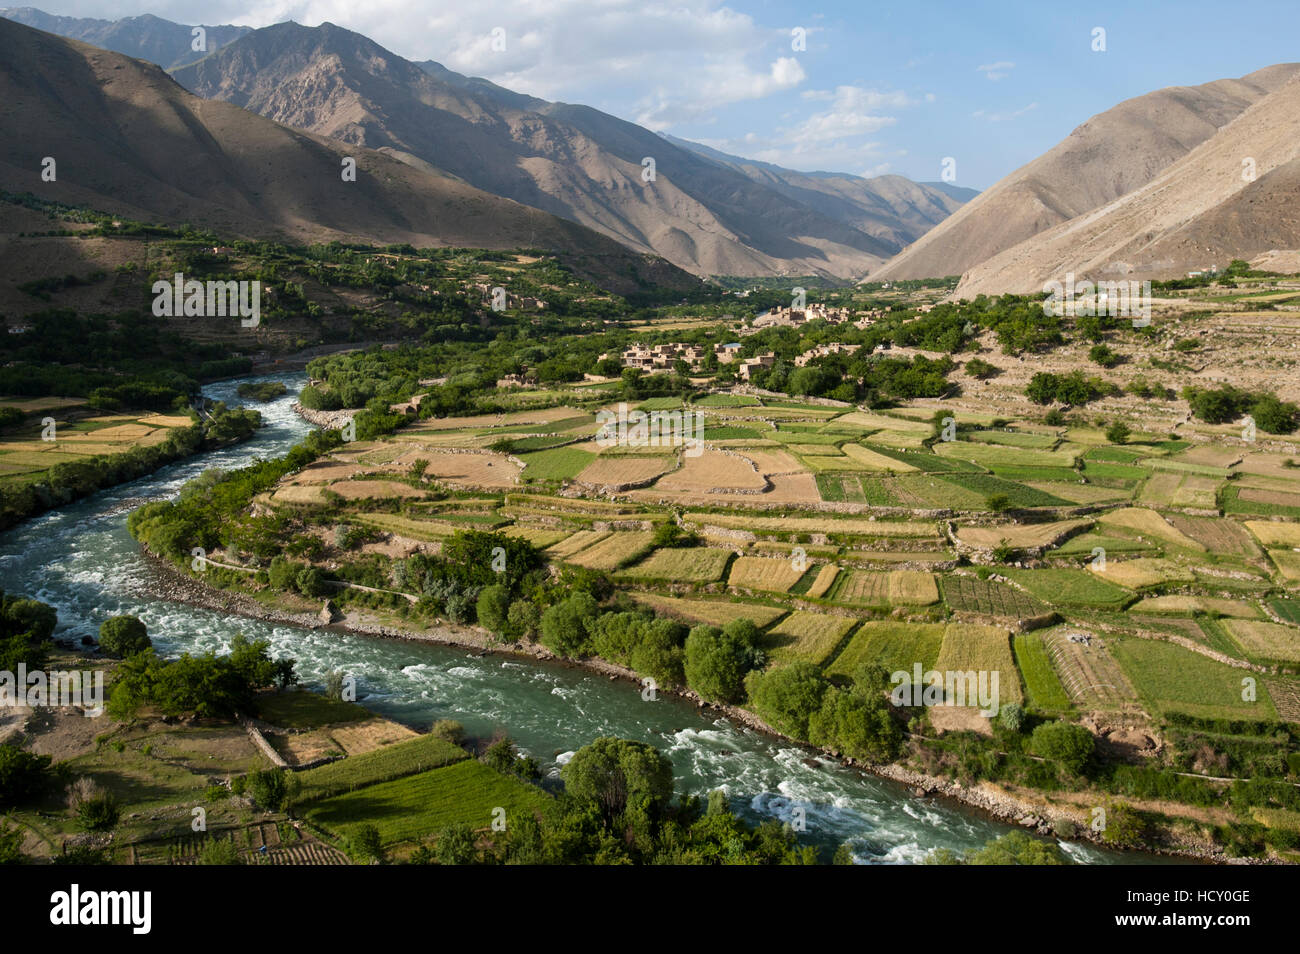 The green of the irrigated fields contrasts with the arid hills above, Afghanistan - Stock Image